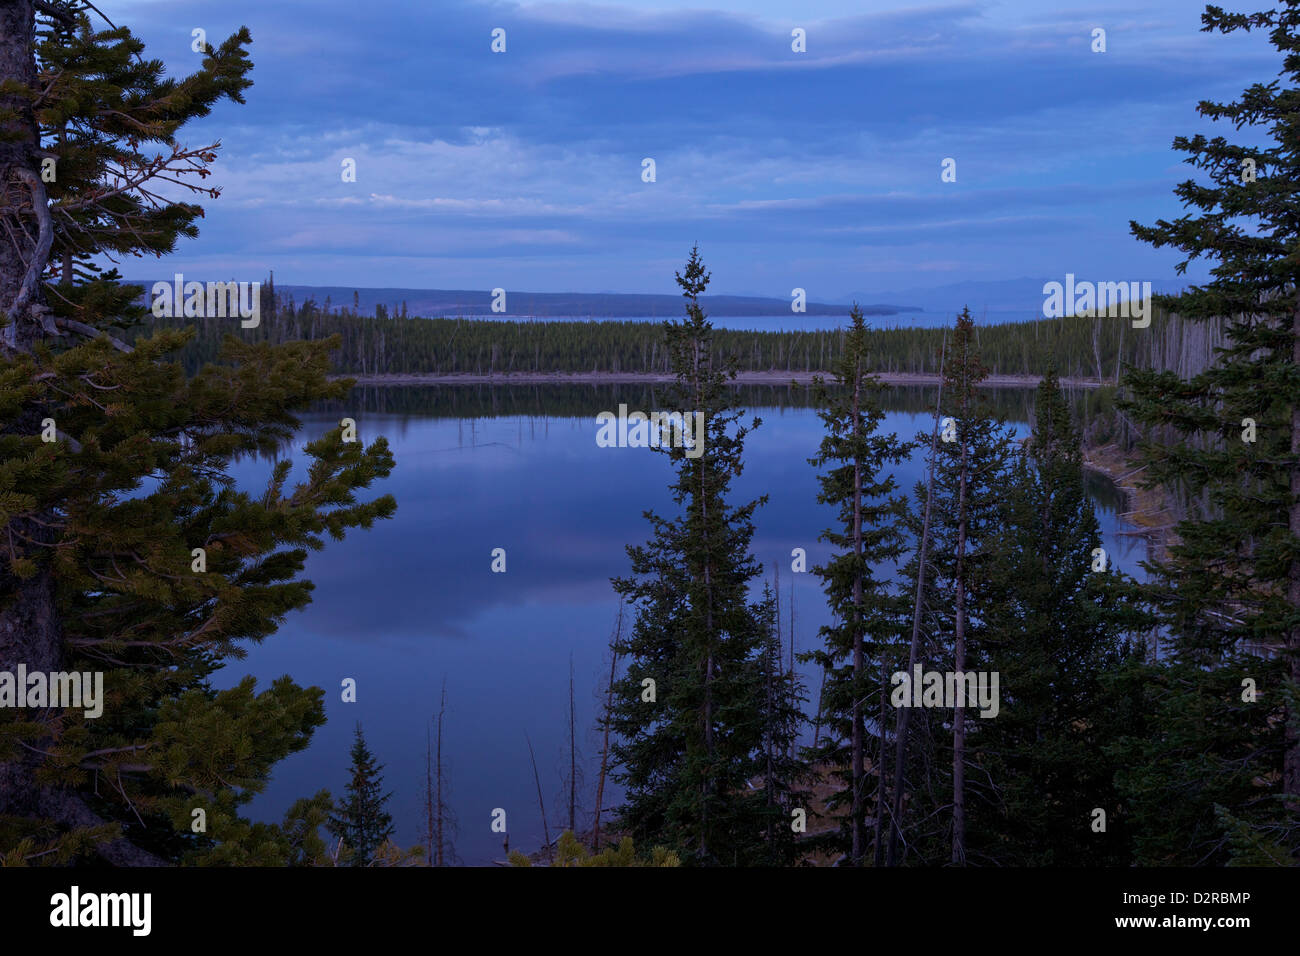 View of Duck Lake and Yellowstone Lake at dusk from near West Thumb, Yellowstone National Park, Wyoming, USA - Stock Image